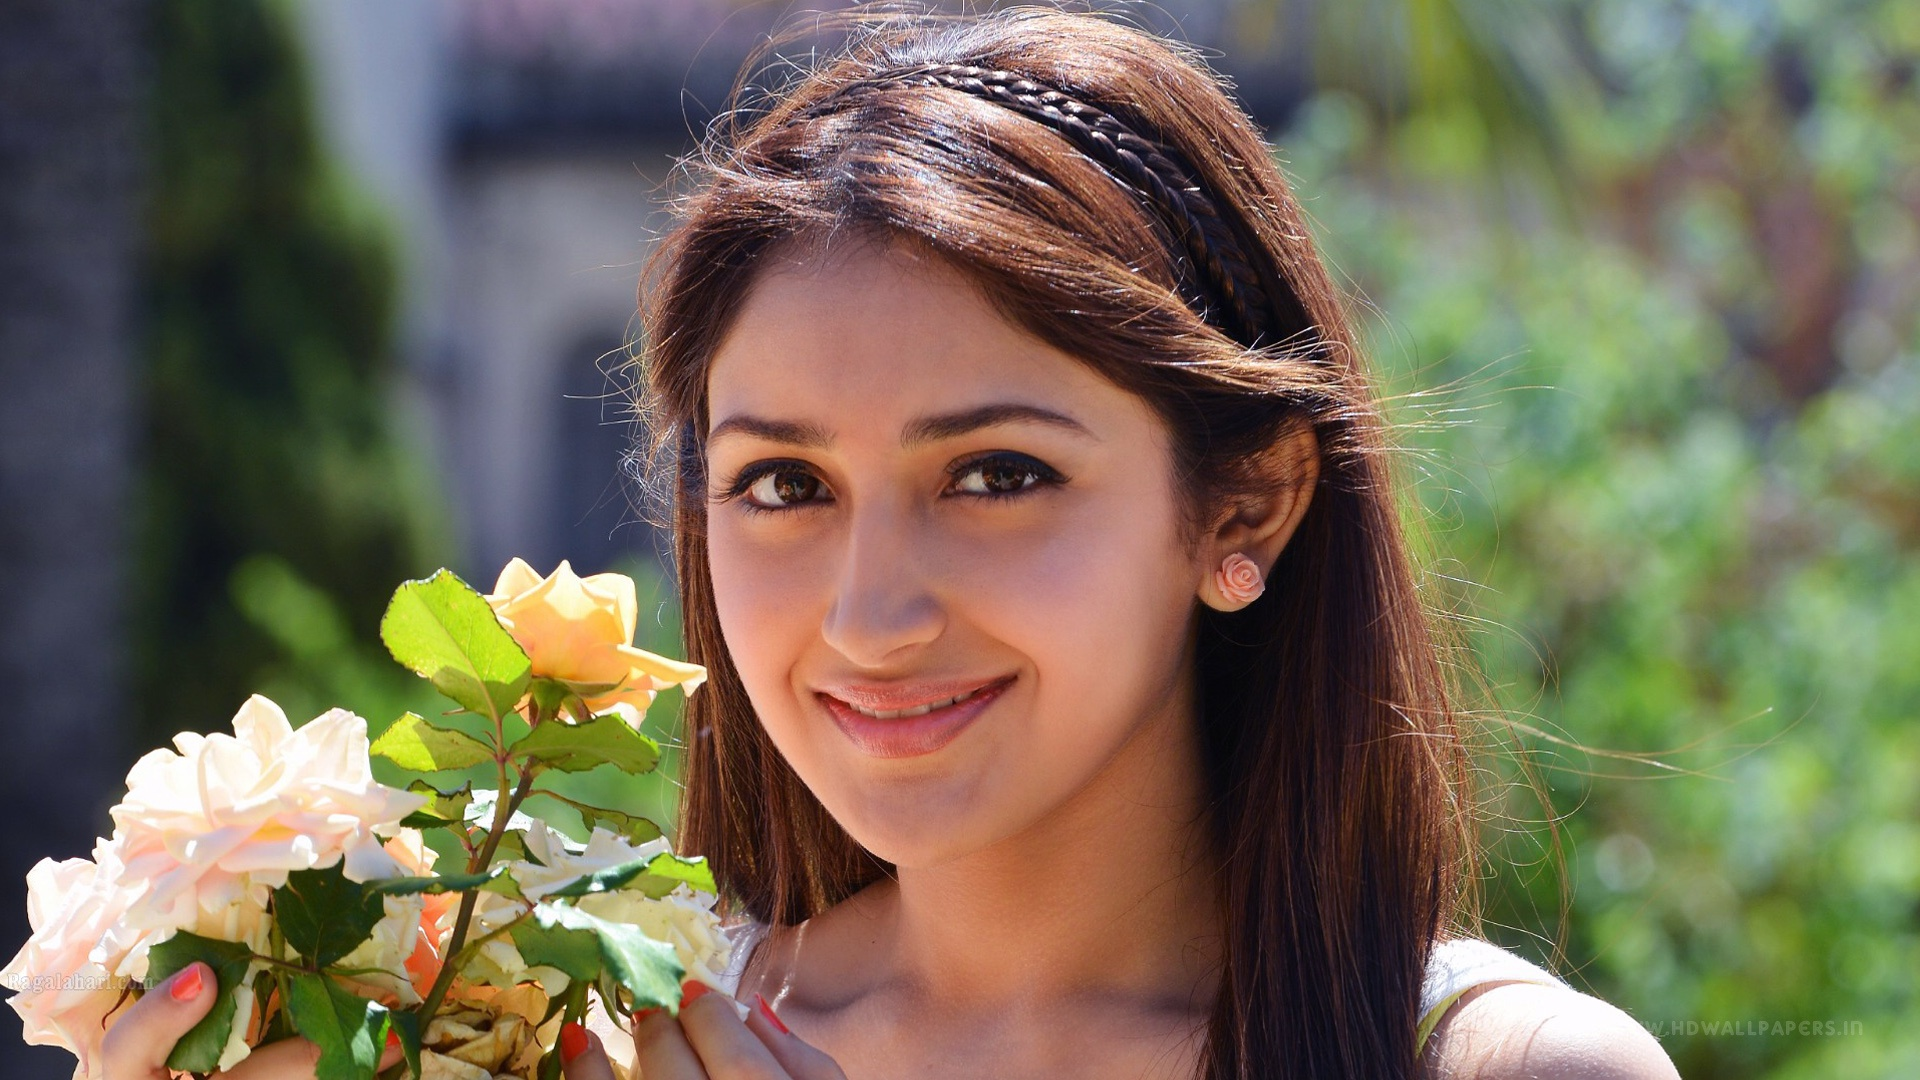 Telugu All Heroines Pictures Wallpapers: Sayesha Saigal Telugu Actress Wallpapers In Jpg Format For